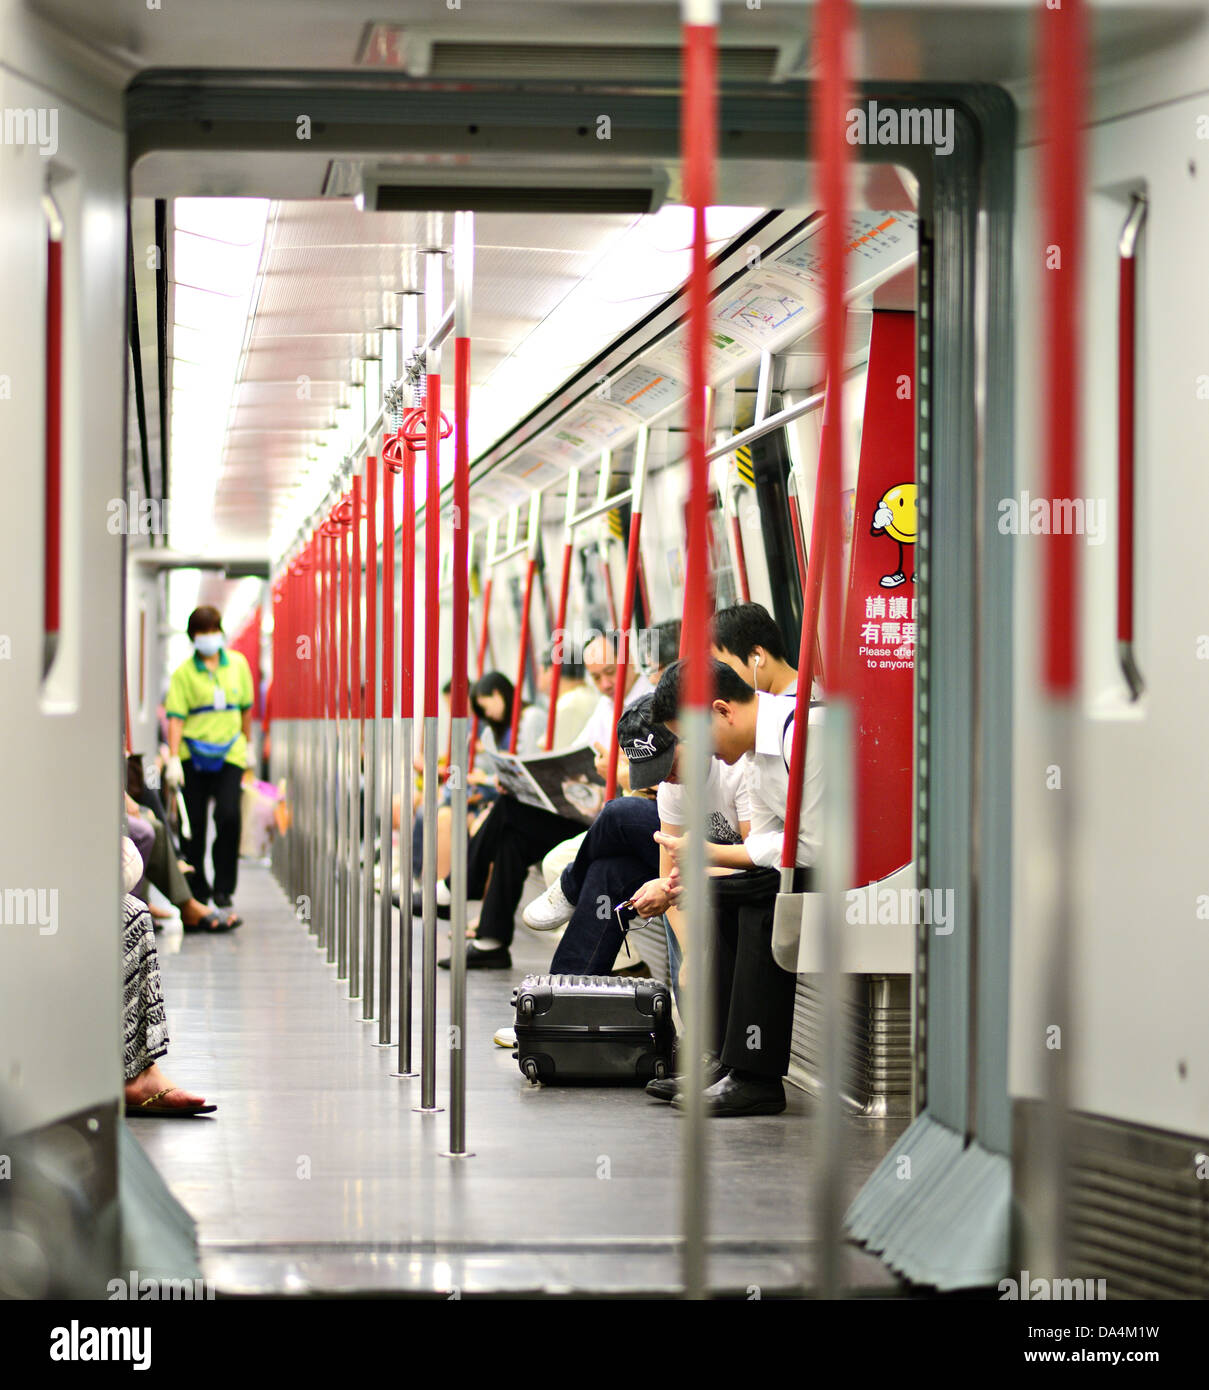 Hong Kong MTR subway car interior. - Stock Image